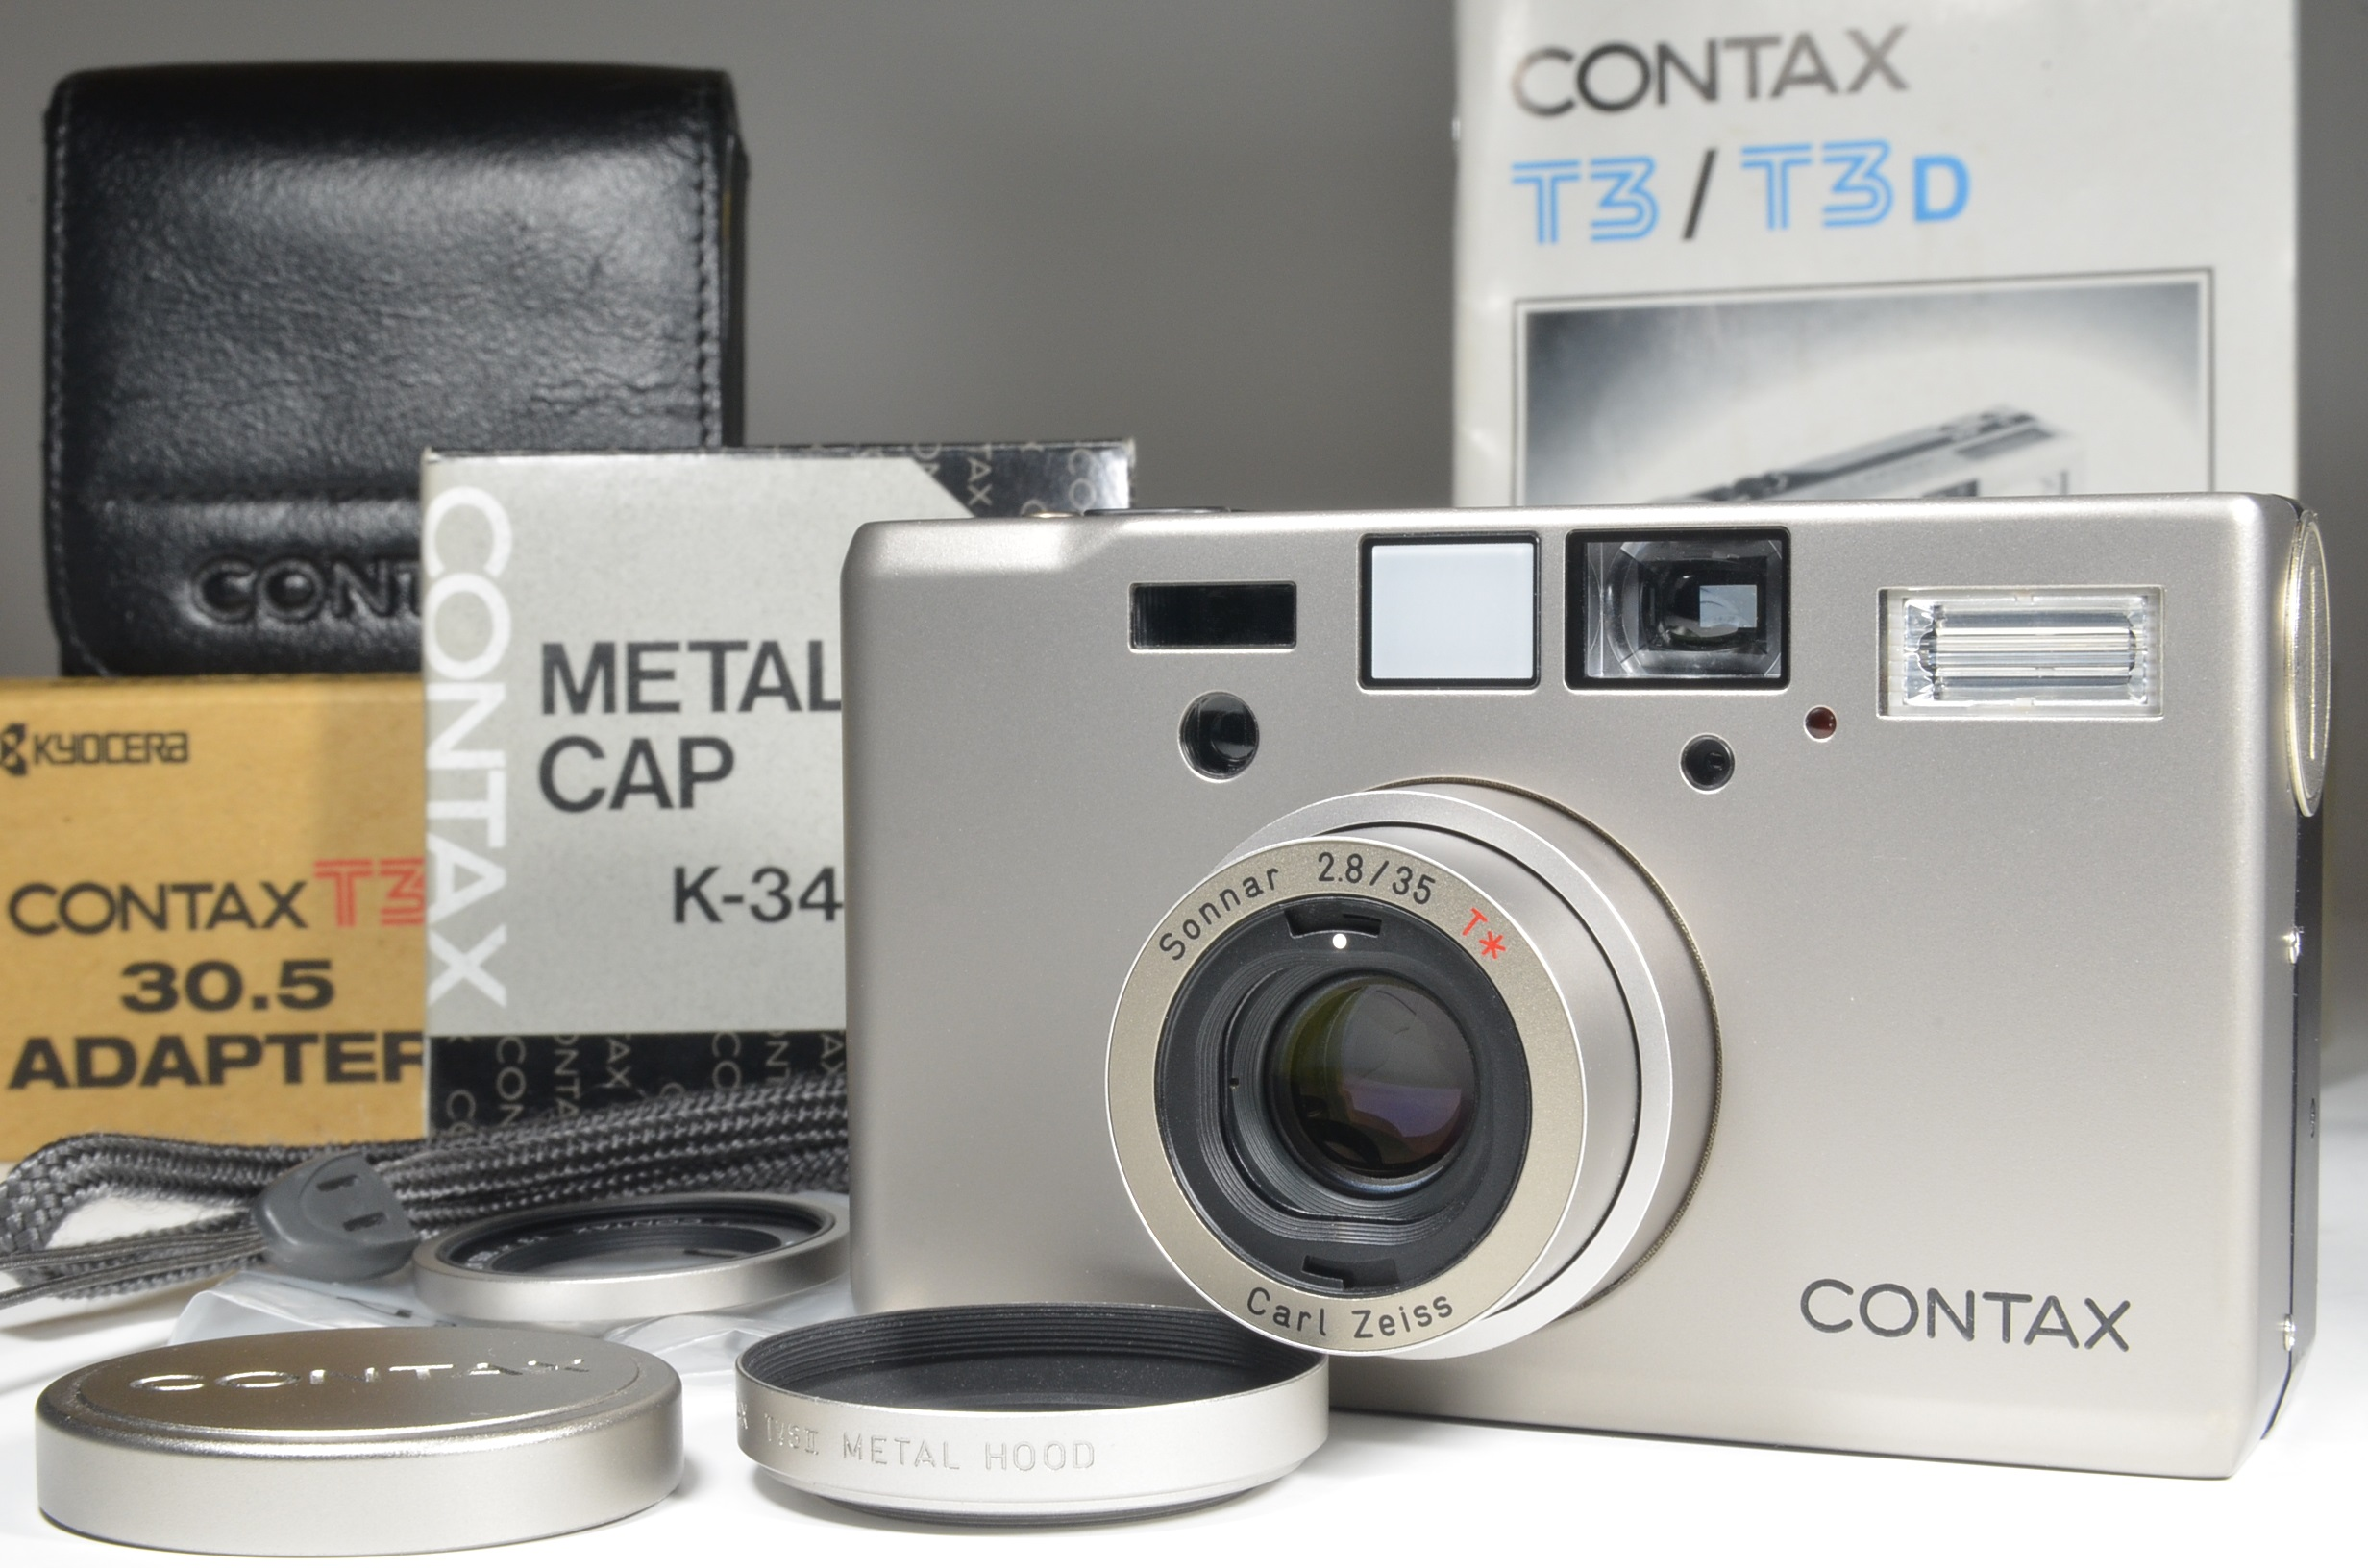 contax t3 with 30.5 adapter and metal hood k-34